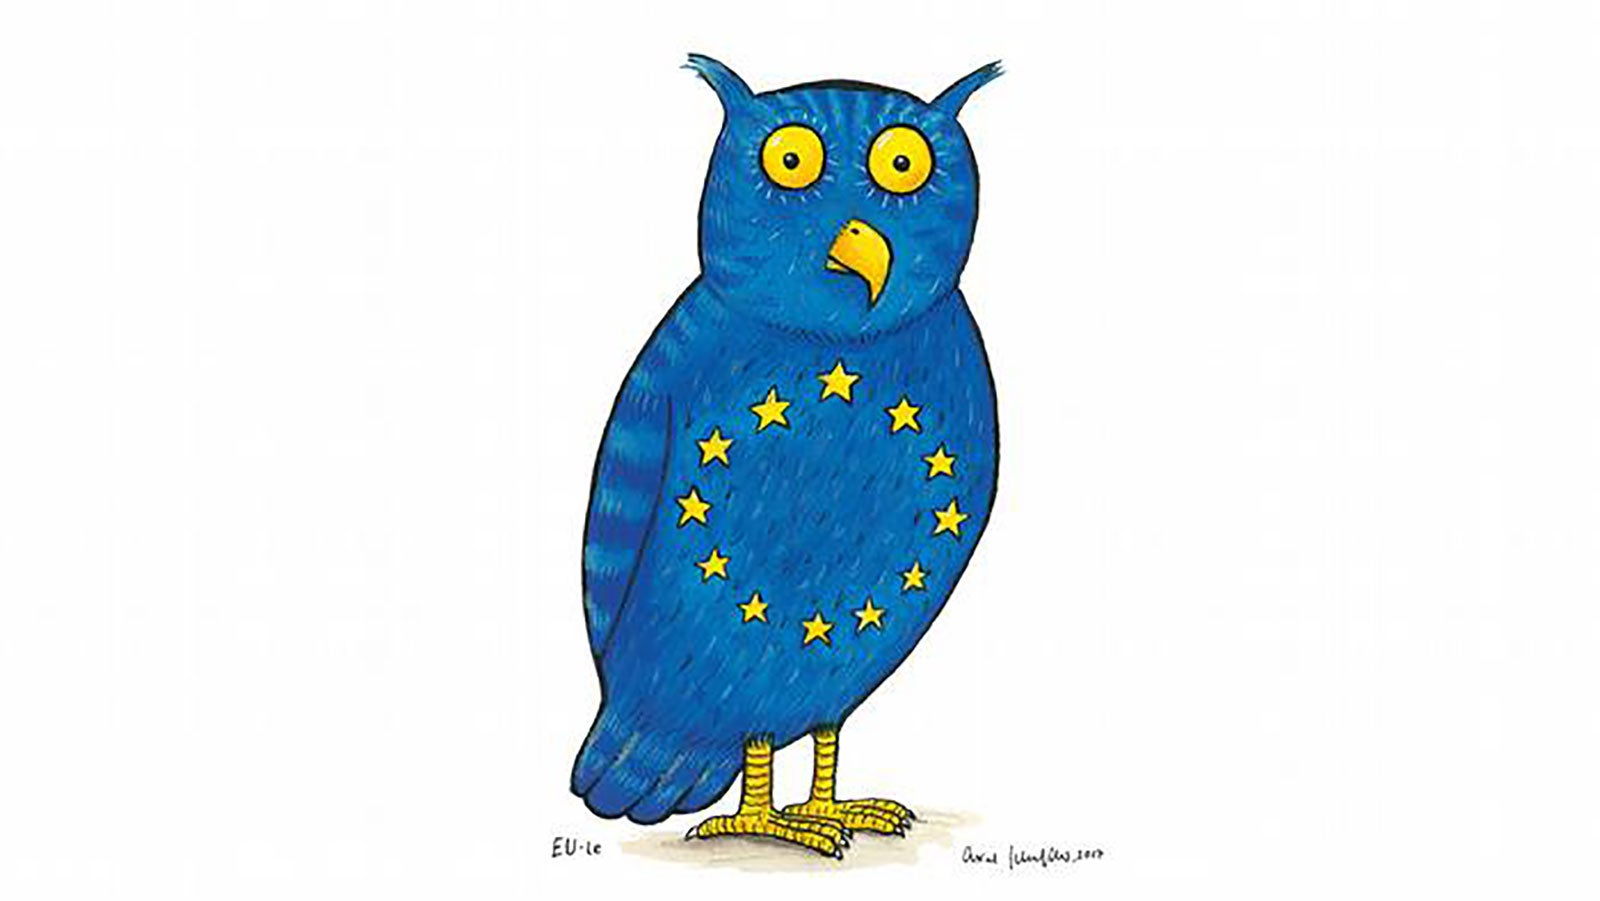 Axel Schefflers illustration of a blue own with the yellow stars of the EU on its chest